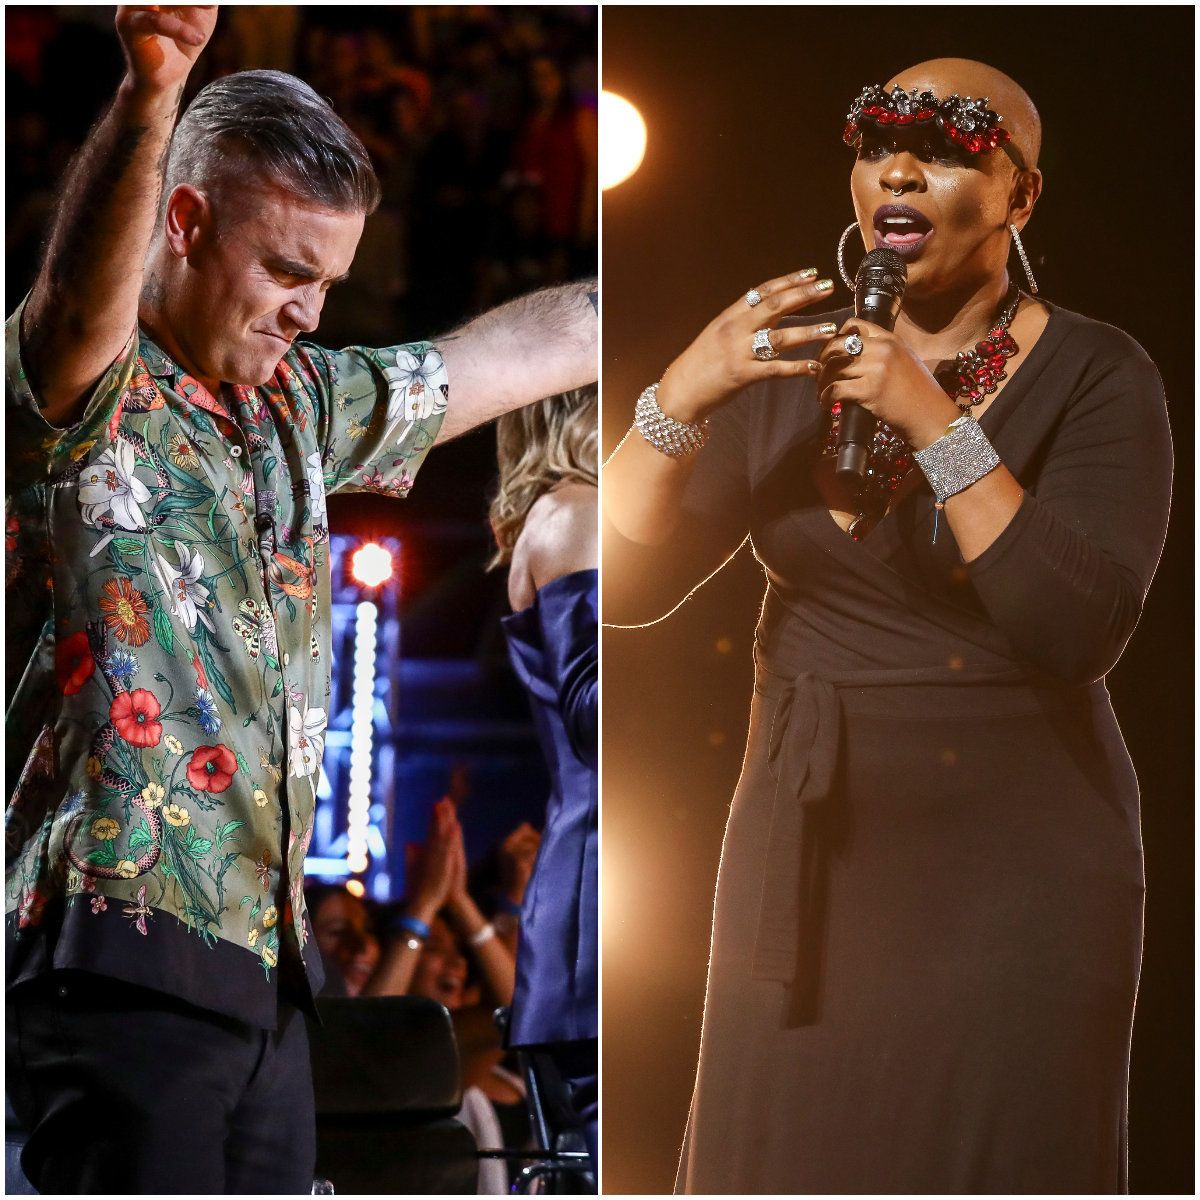 Robbie Williams Has Emotional 'X Factor' Moment As 90s Dance Singer Janice Robinson